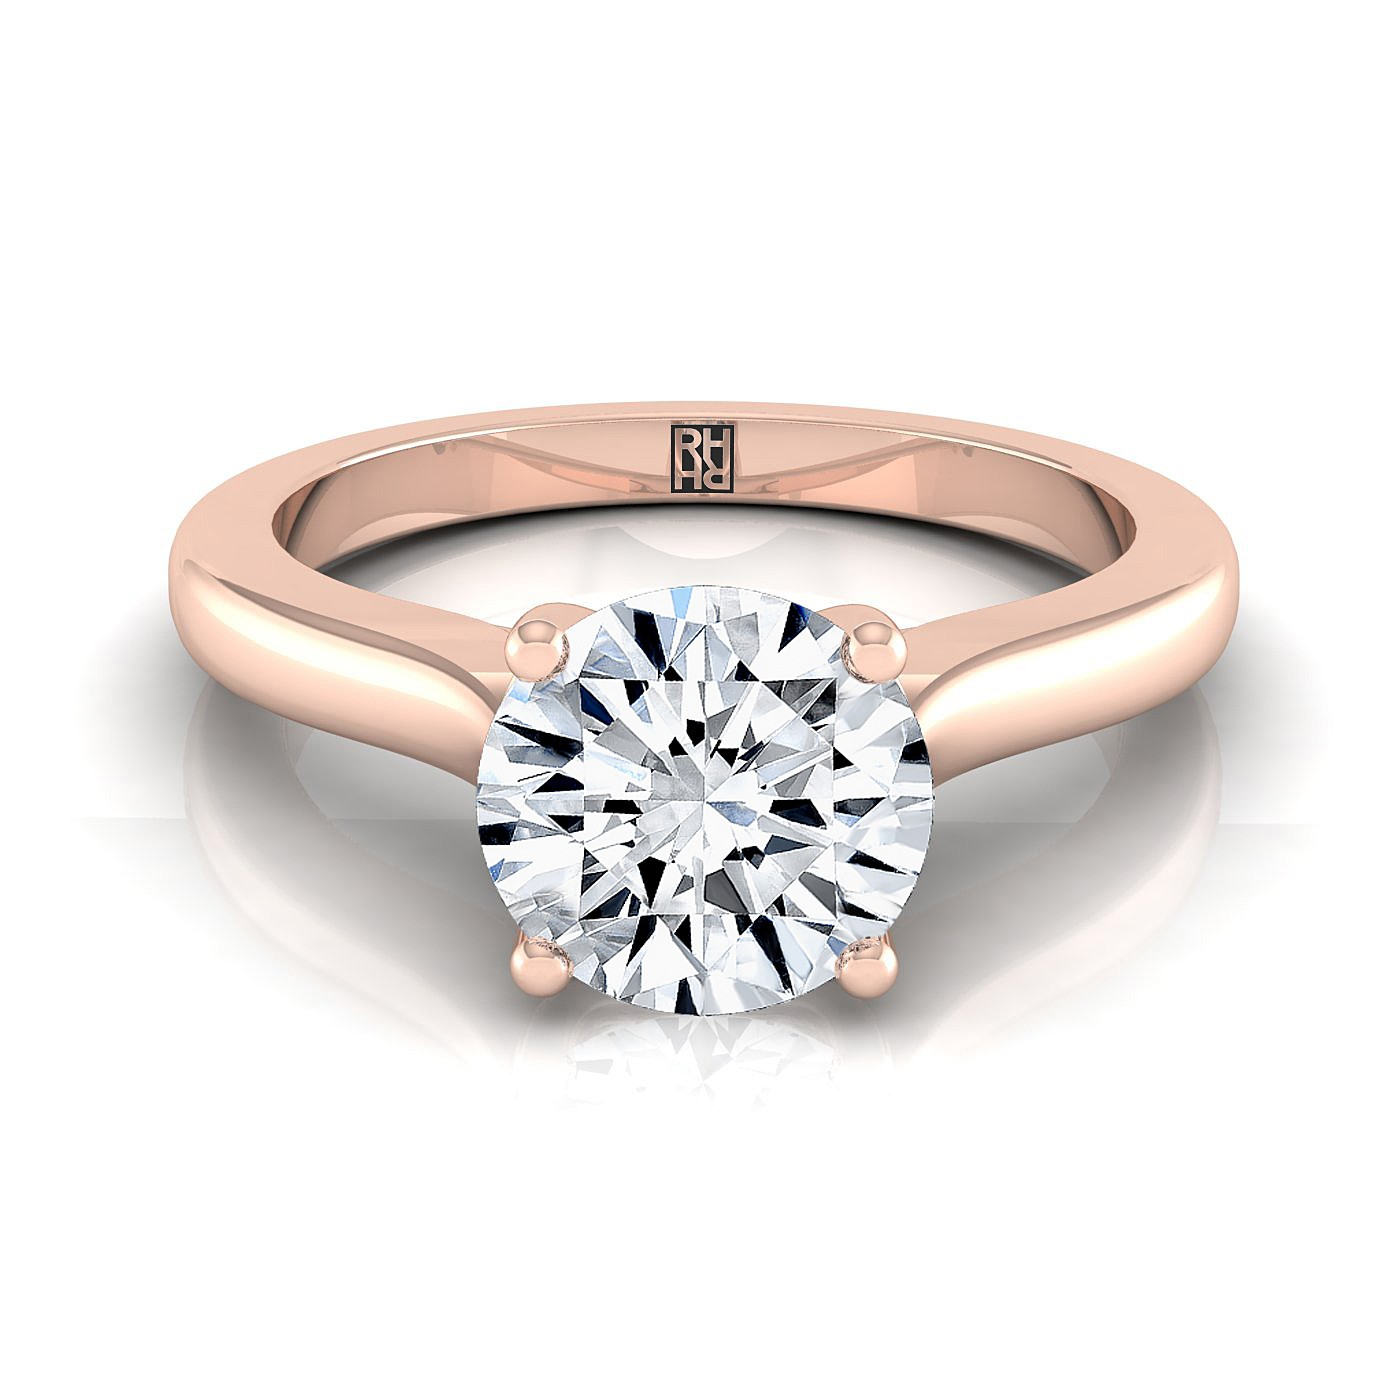 nei ring shank ctw split square halo diamond products rounded engagement center